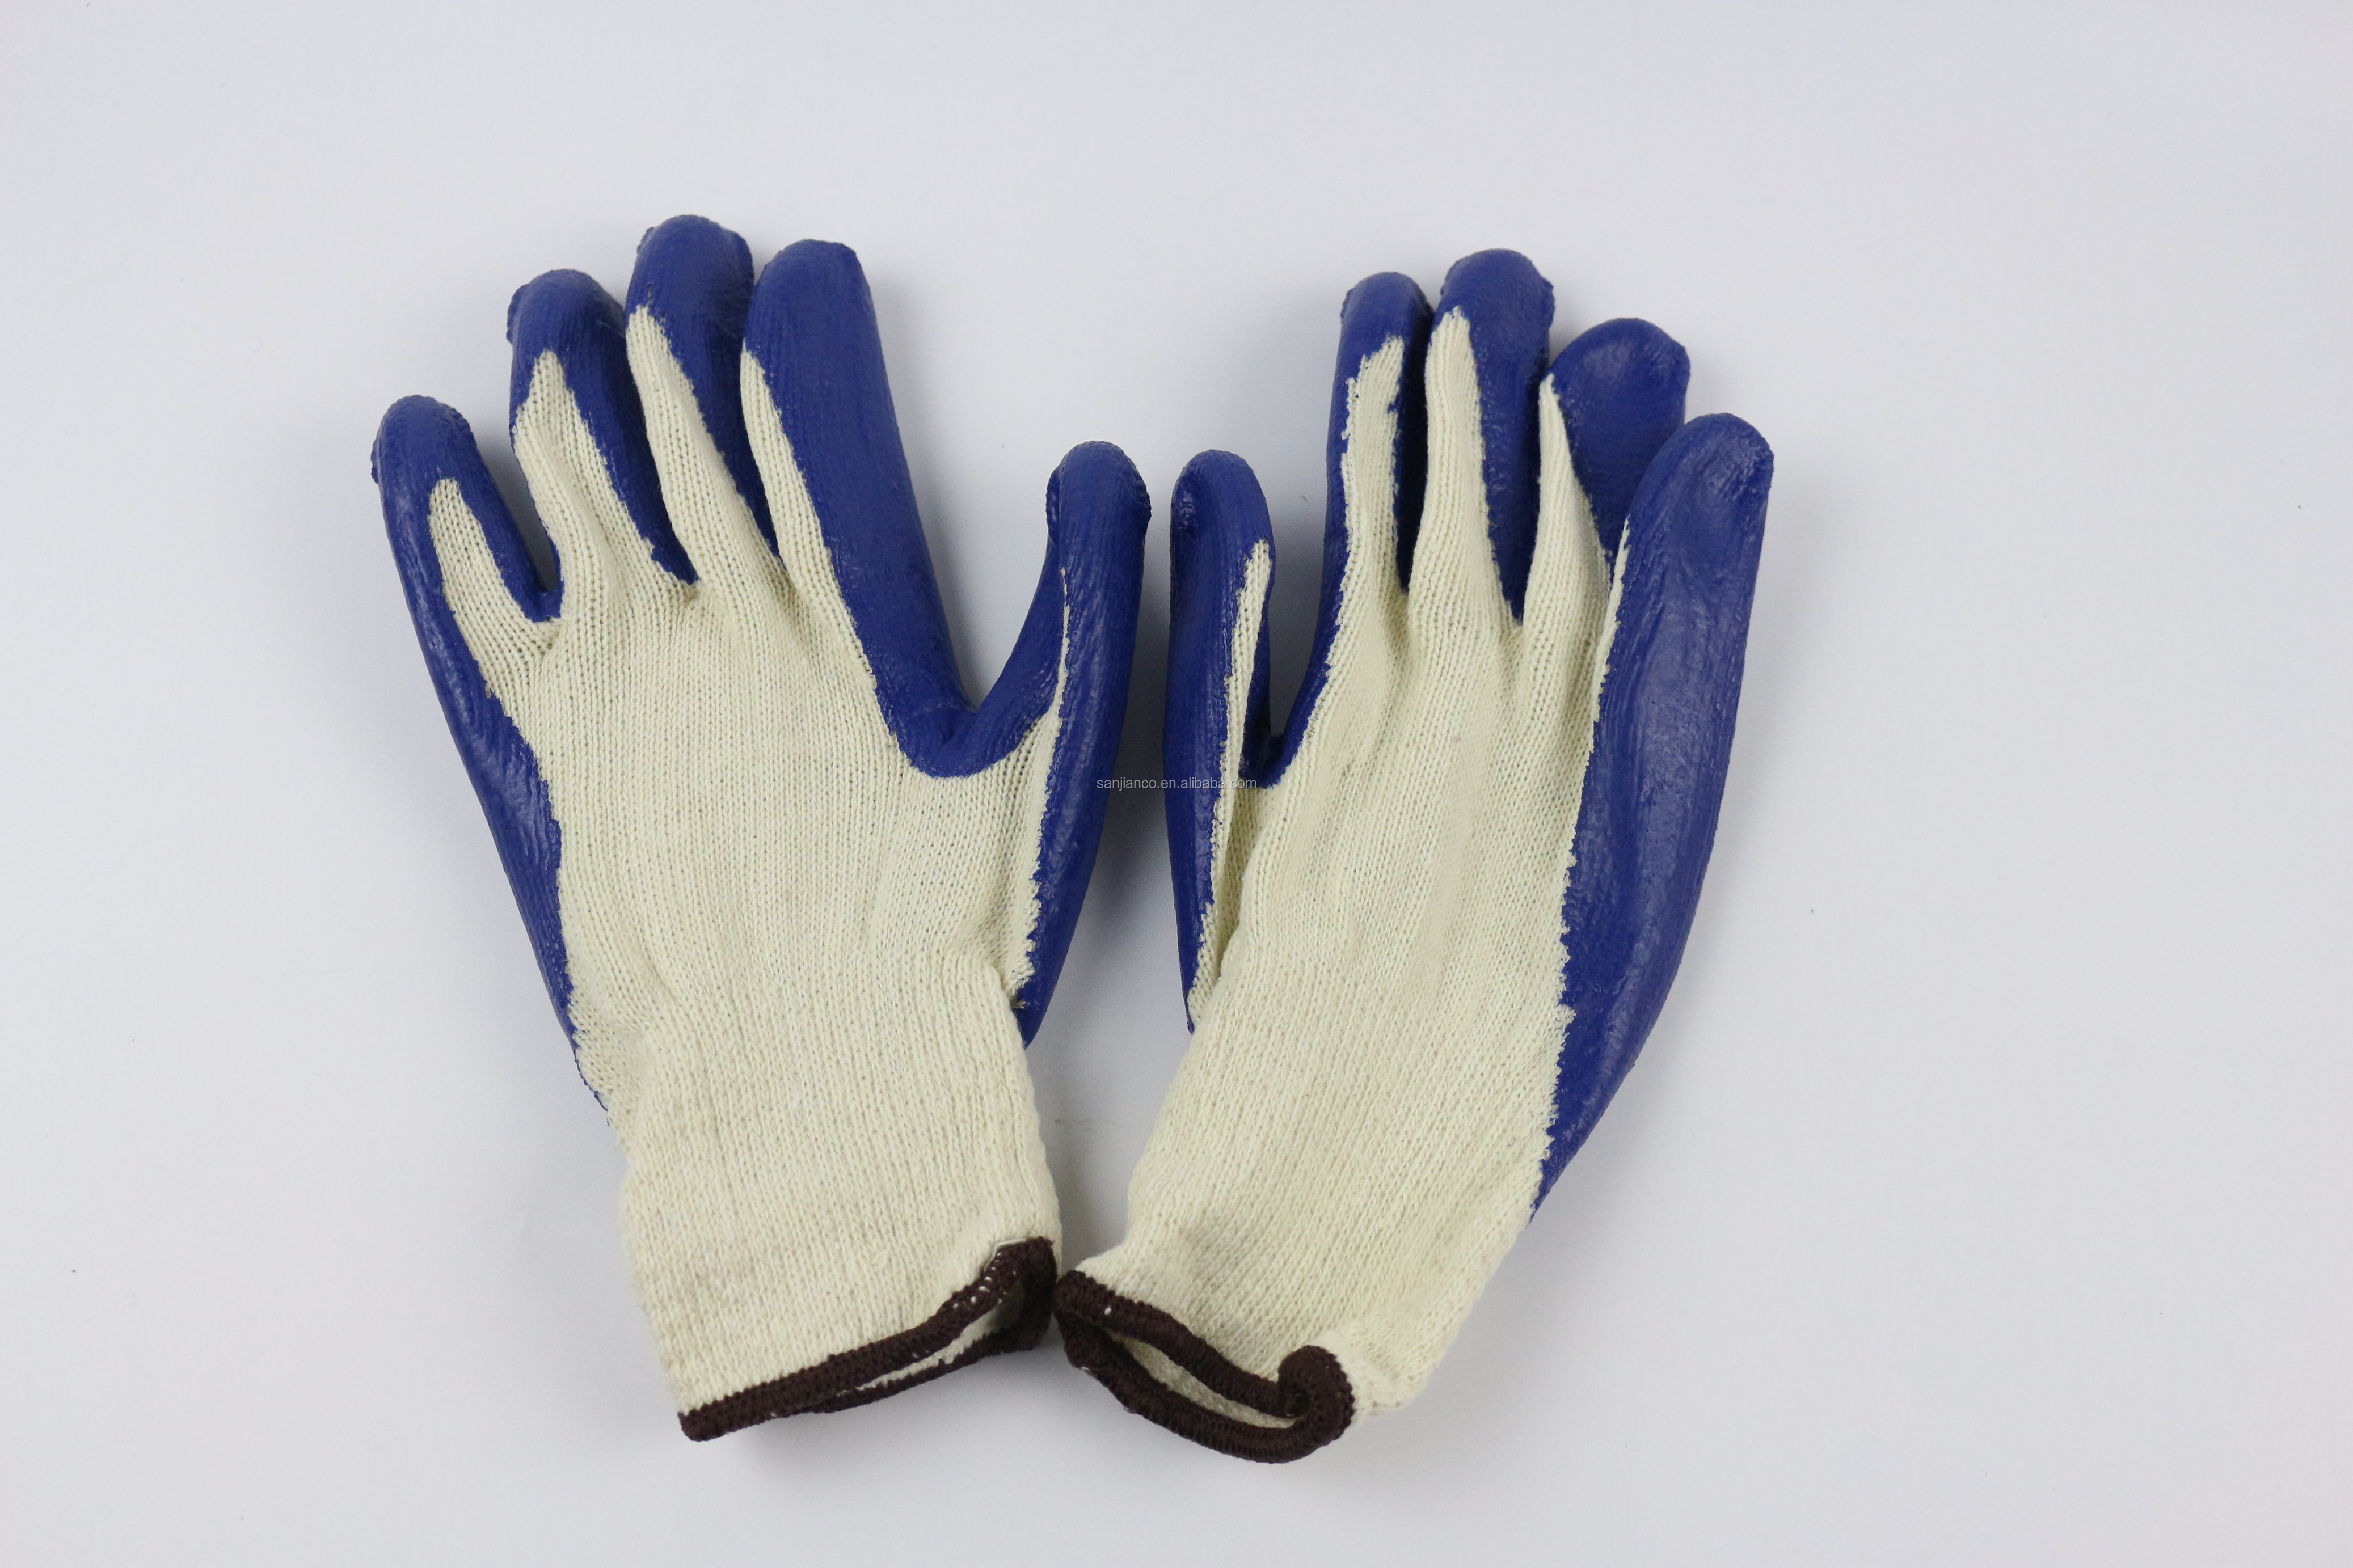 Sanjian blue smooth palm rubber cotton gloves heavy duty cotton work gloves